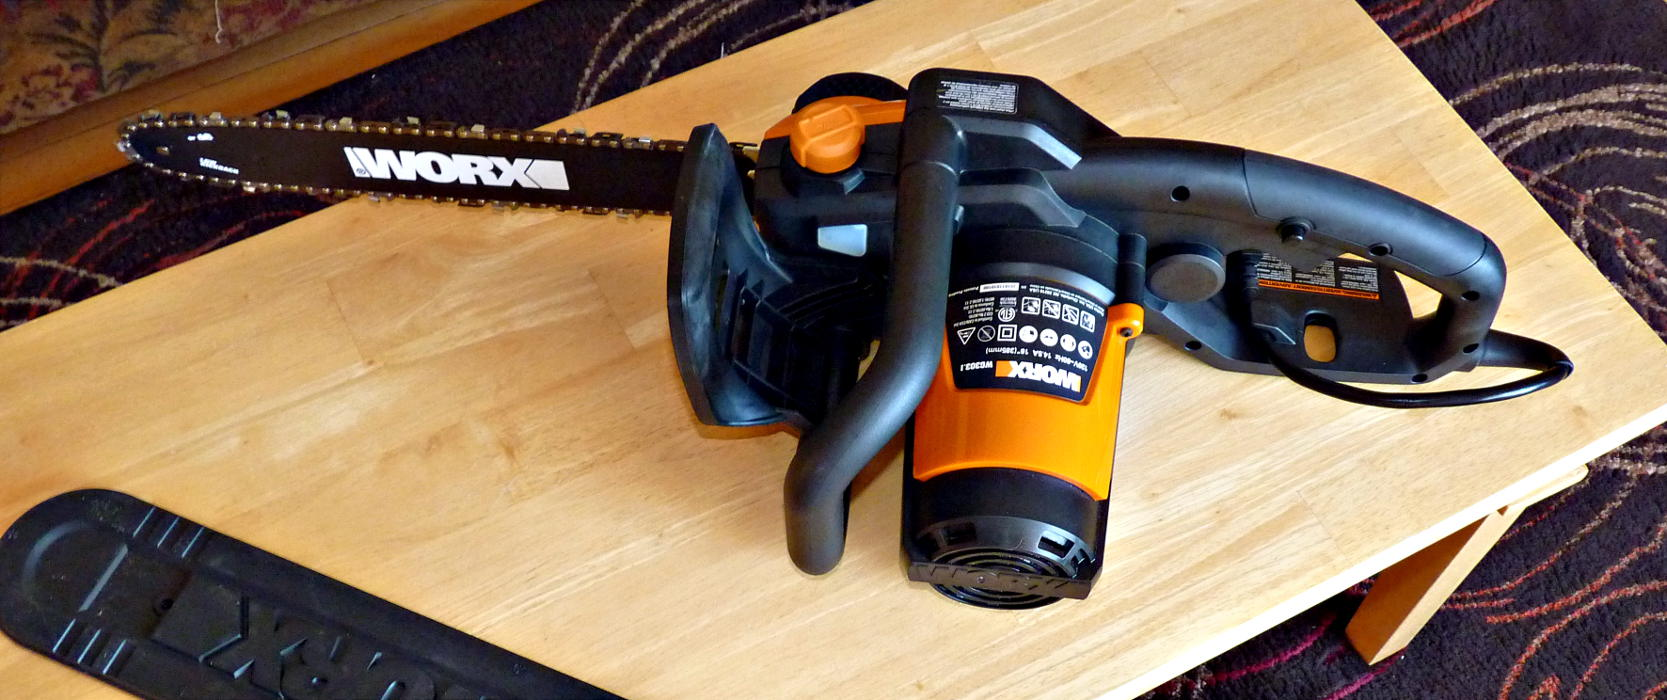 Worx wg electric chainsaw review